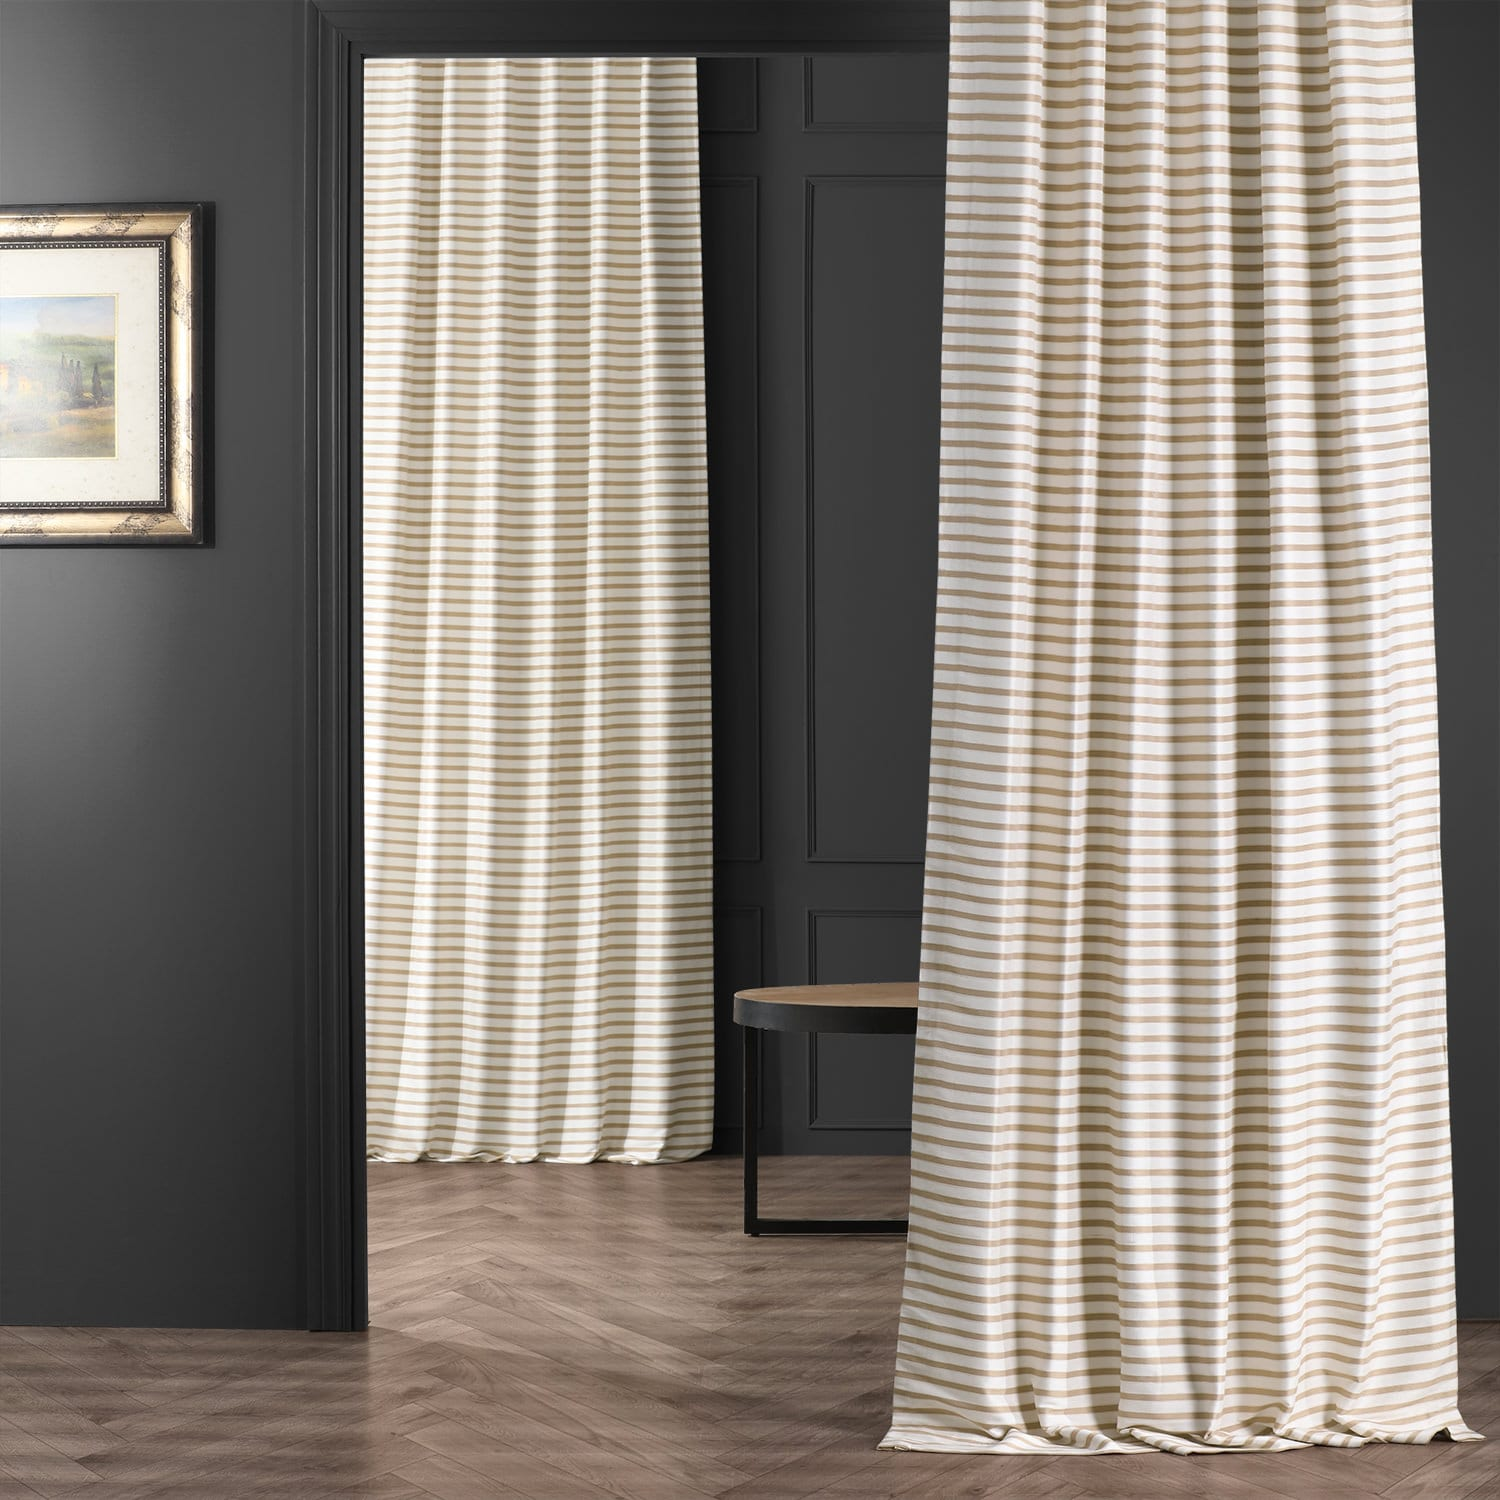 Daydream Tan and Cream Hand Weaved Cotton Curtain